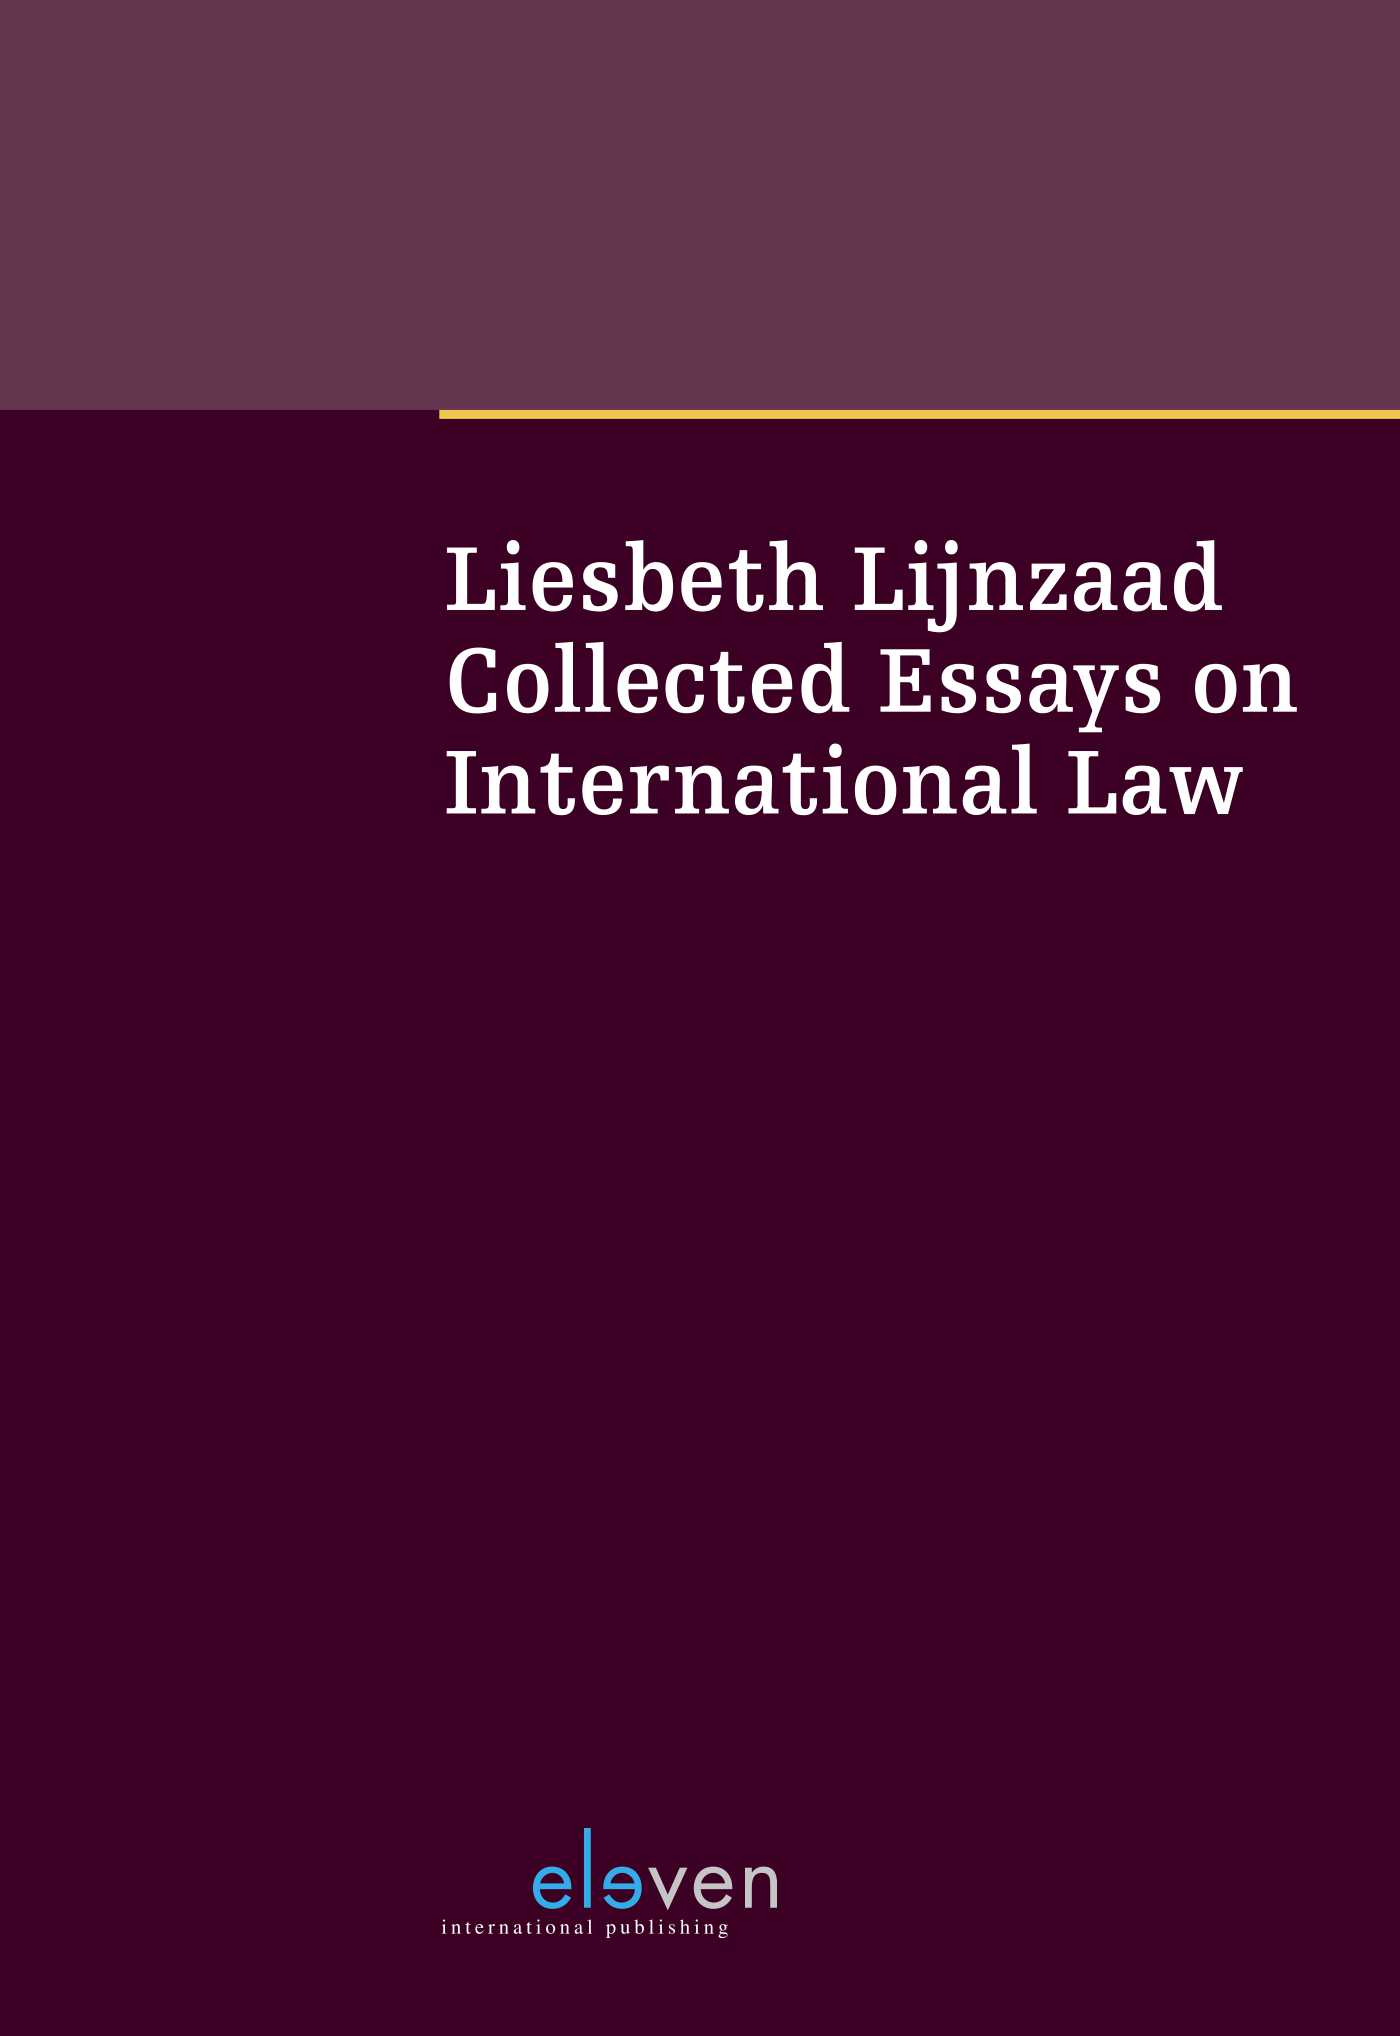 Boek Liesbeth Lijnzaad Collected Essays On International Law  Boek Liesbeth Lijnzaad Collected Essays On International Law  Geschreven  Door Liesbeth Lijnzaad